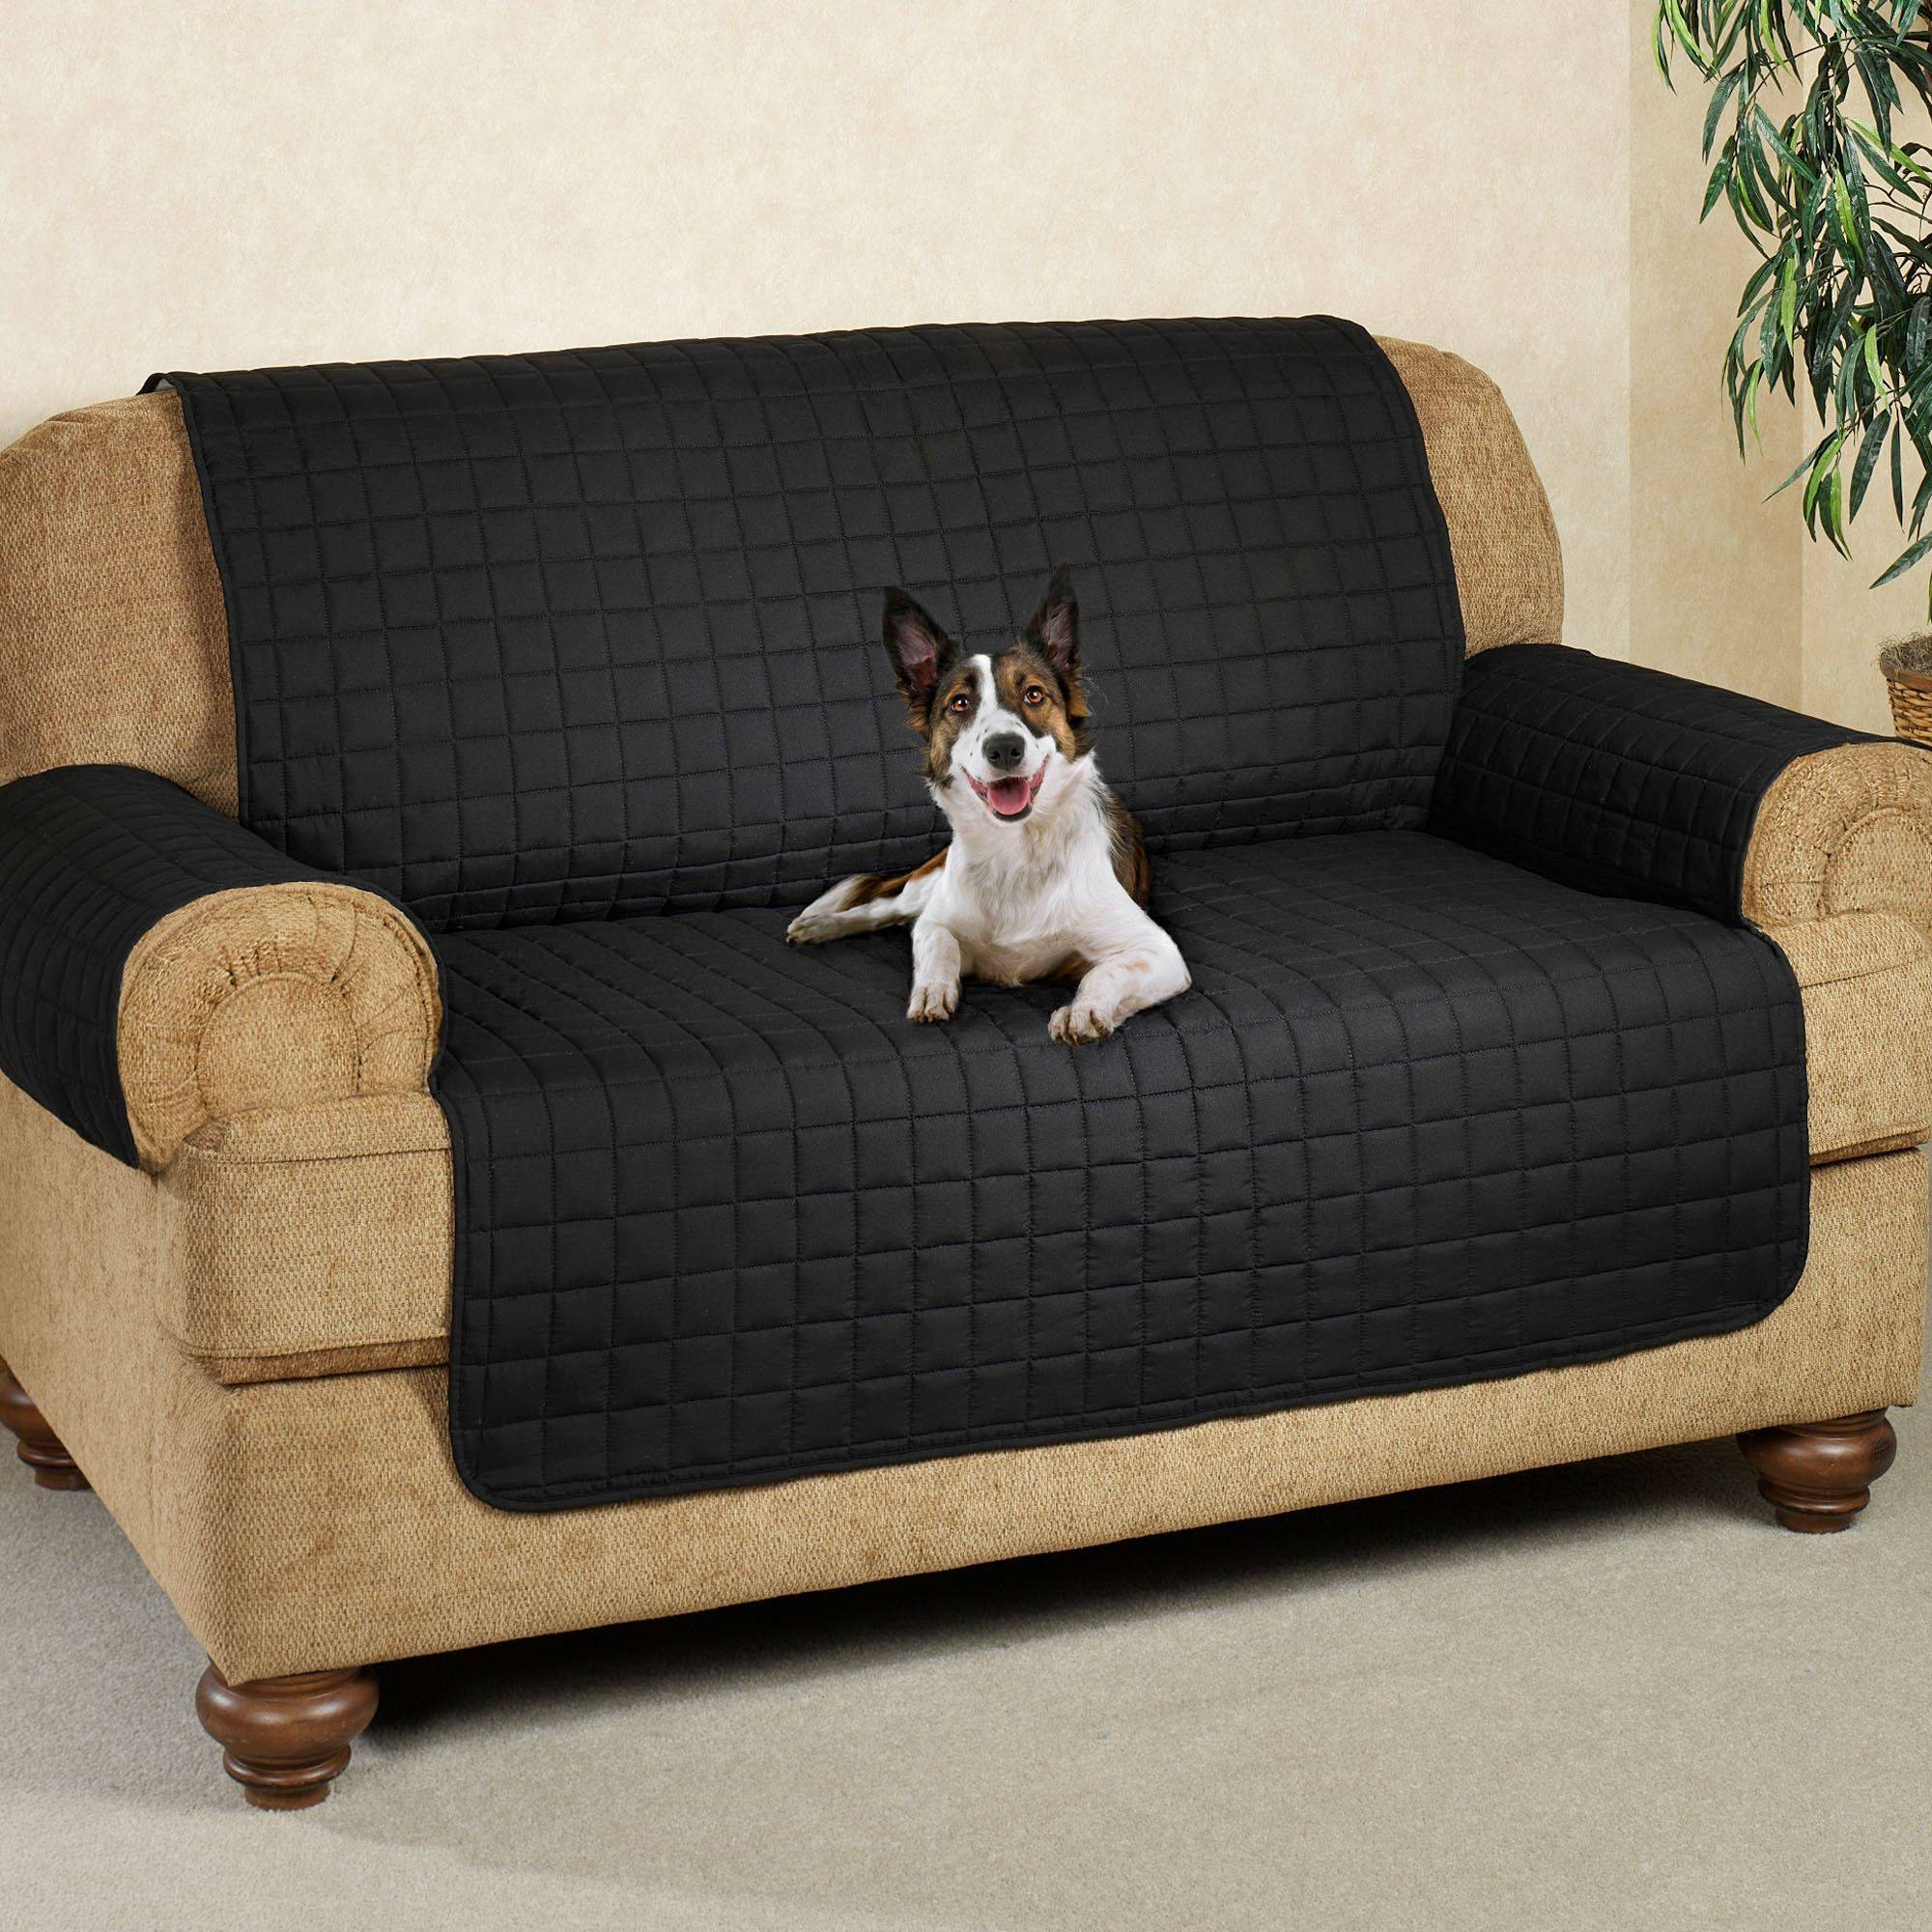 Microfiber Pet Furniture Covers With Tuck In Flaps Pertaining To Cat Proof Sofas (View 10 of 15)